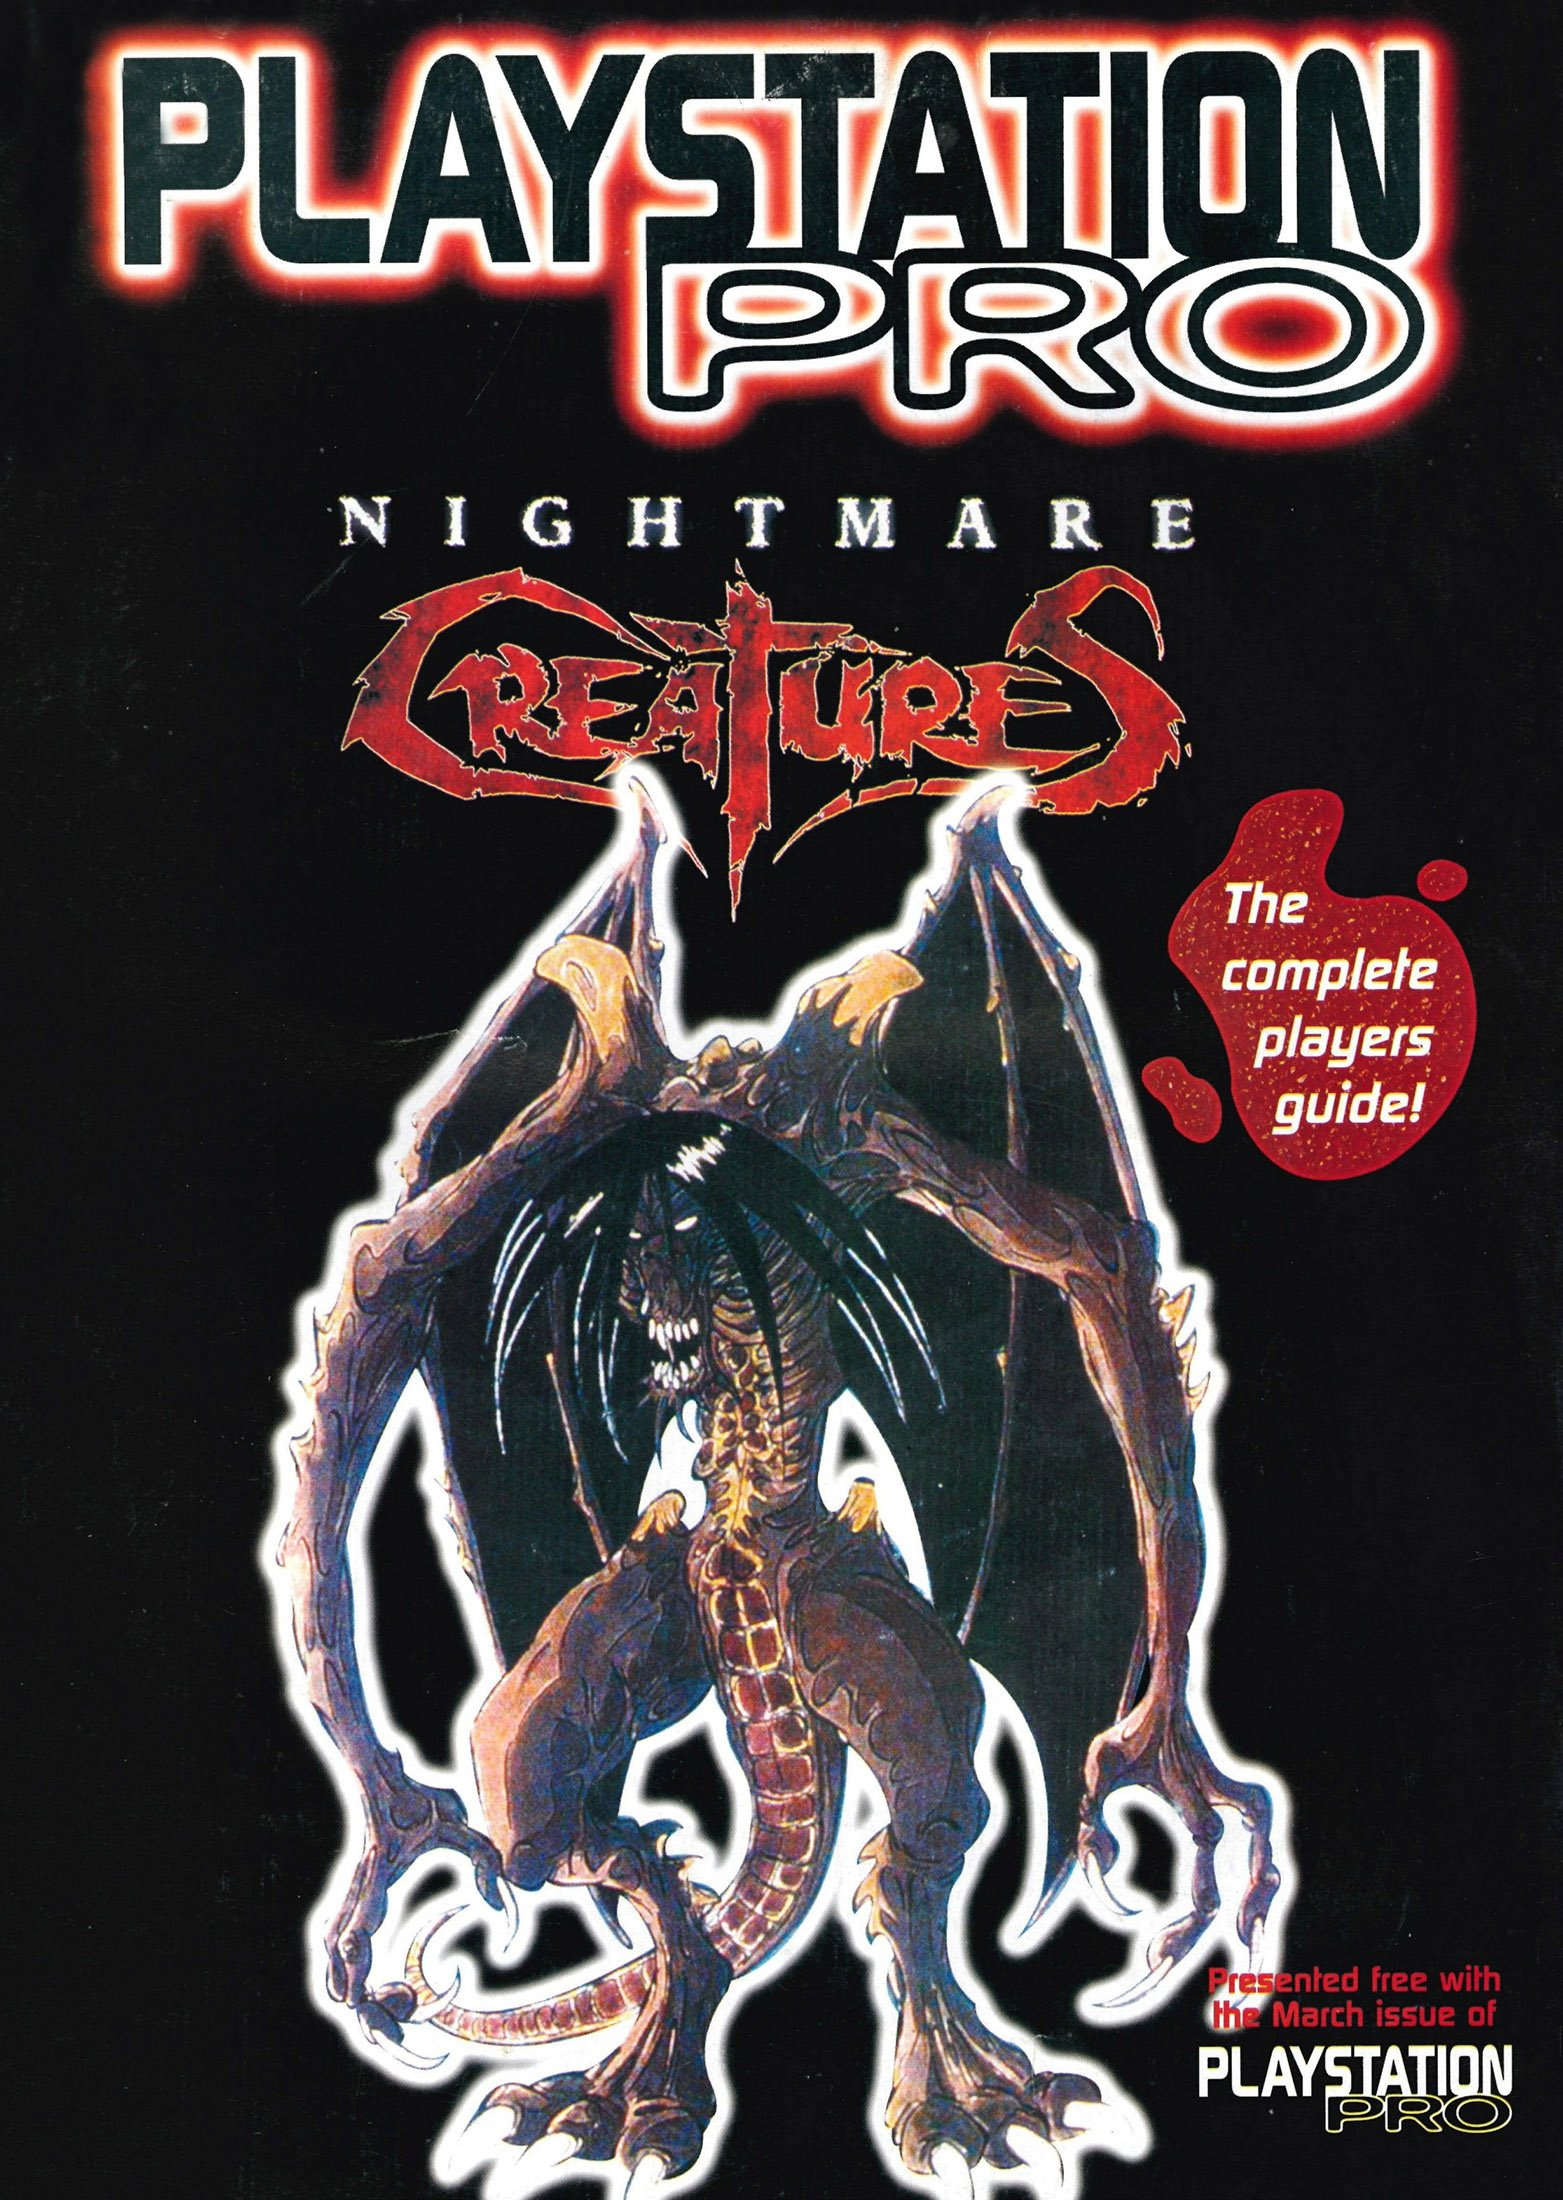 Nightmare Creatures (Issue 5 Supplement) (March 1997)